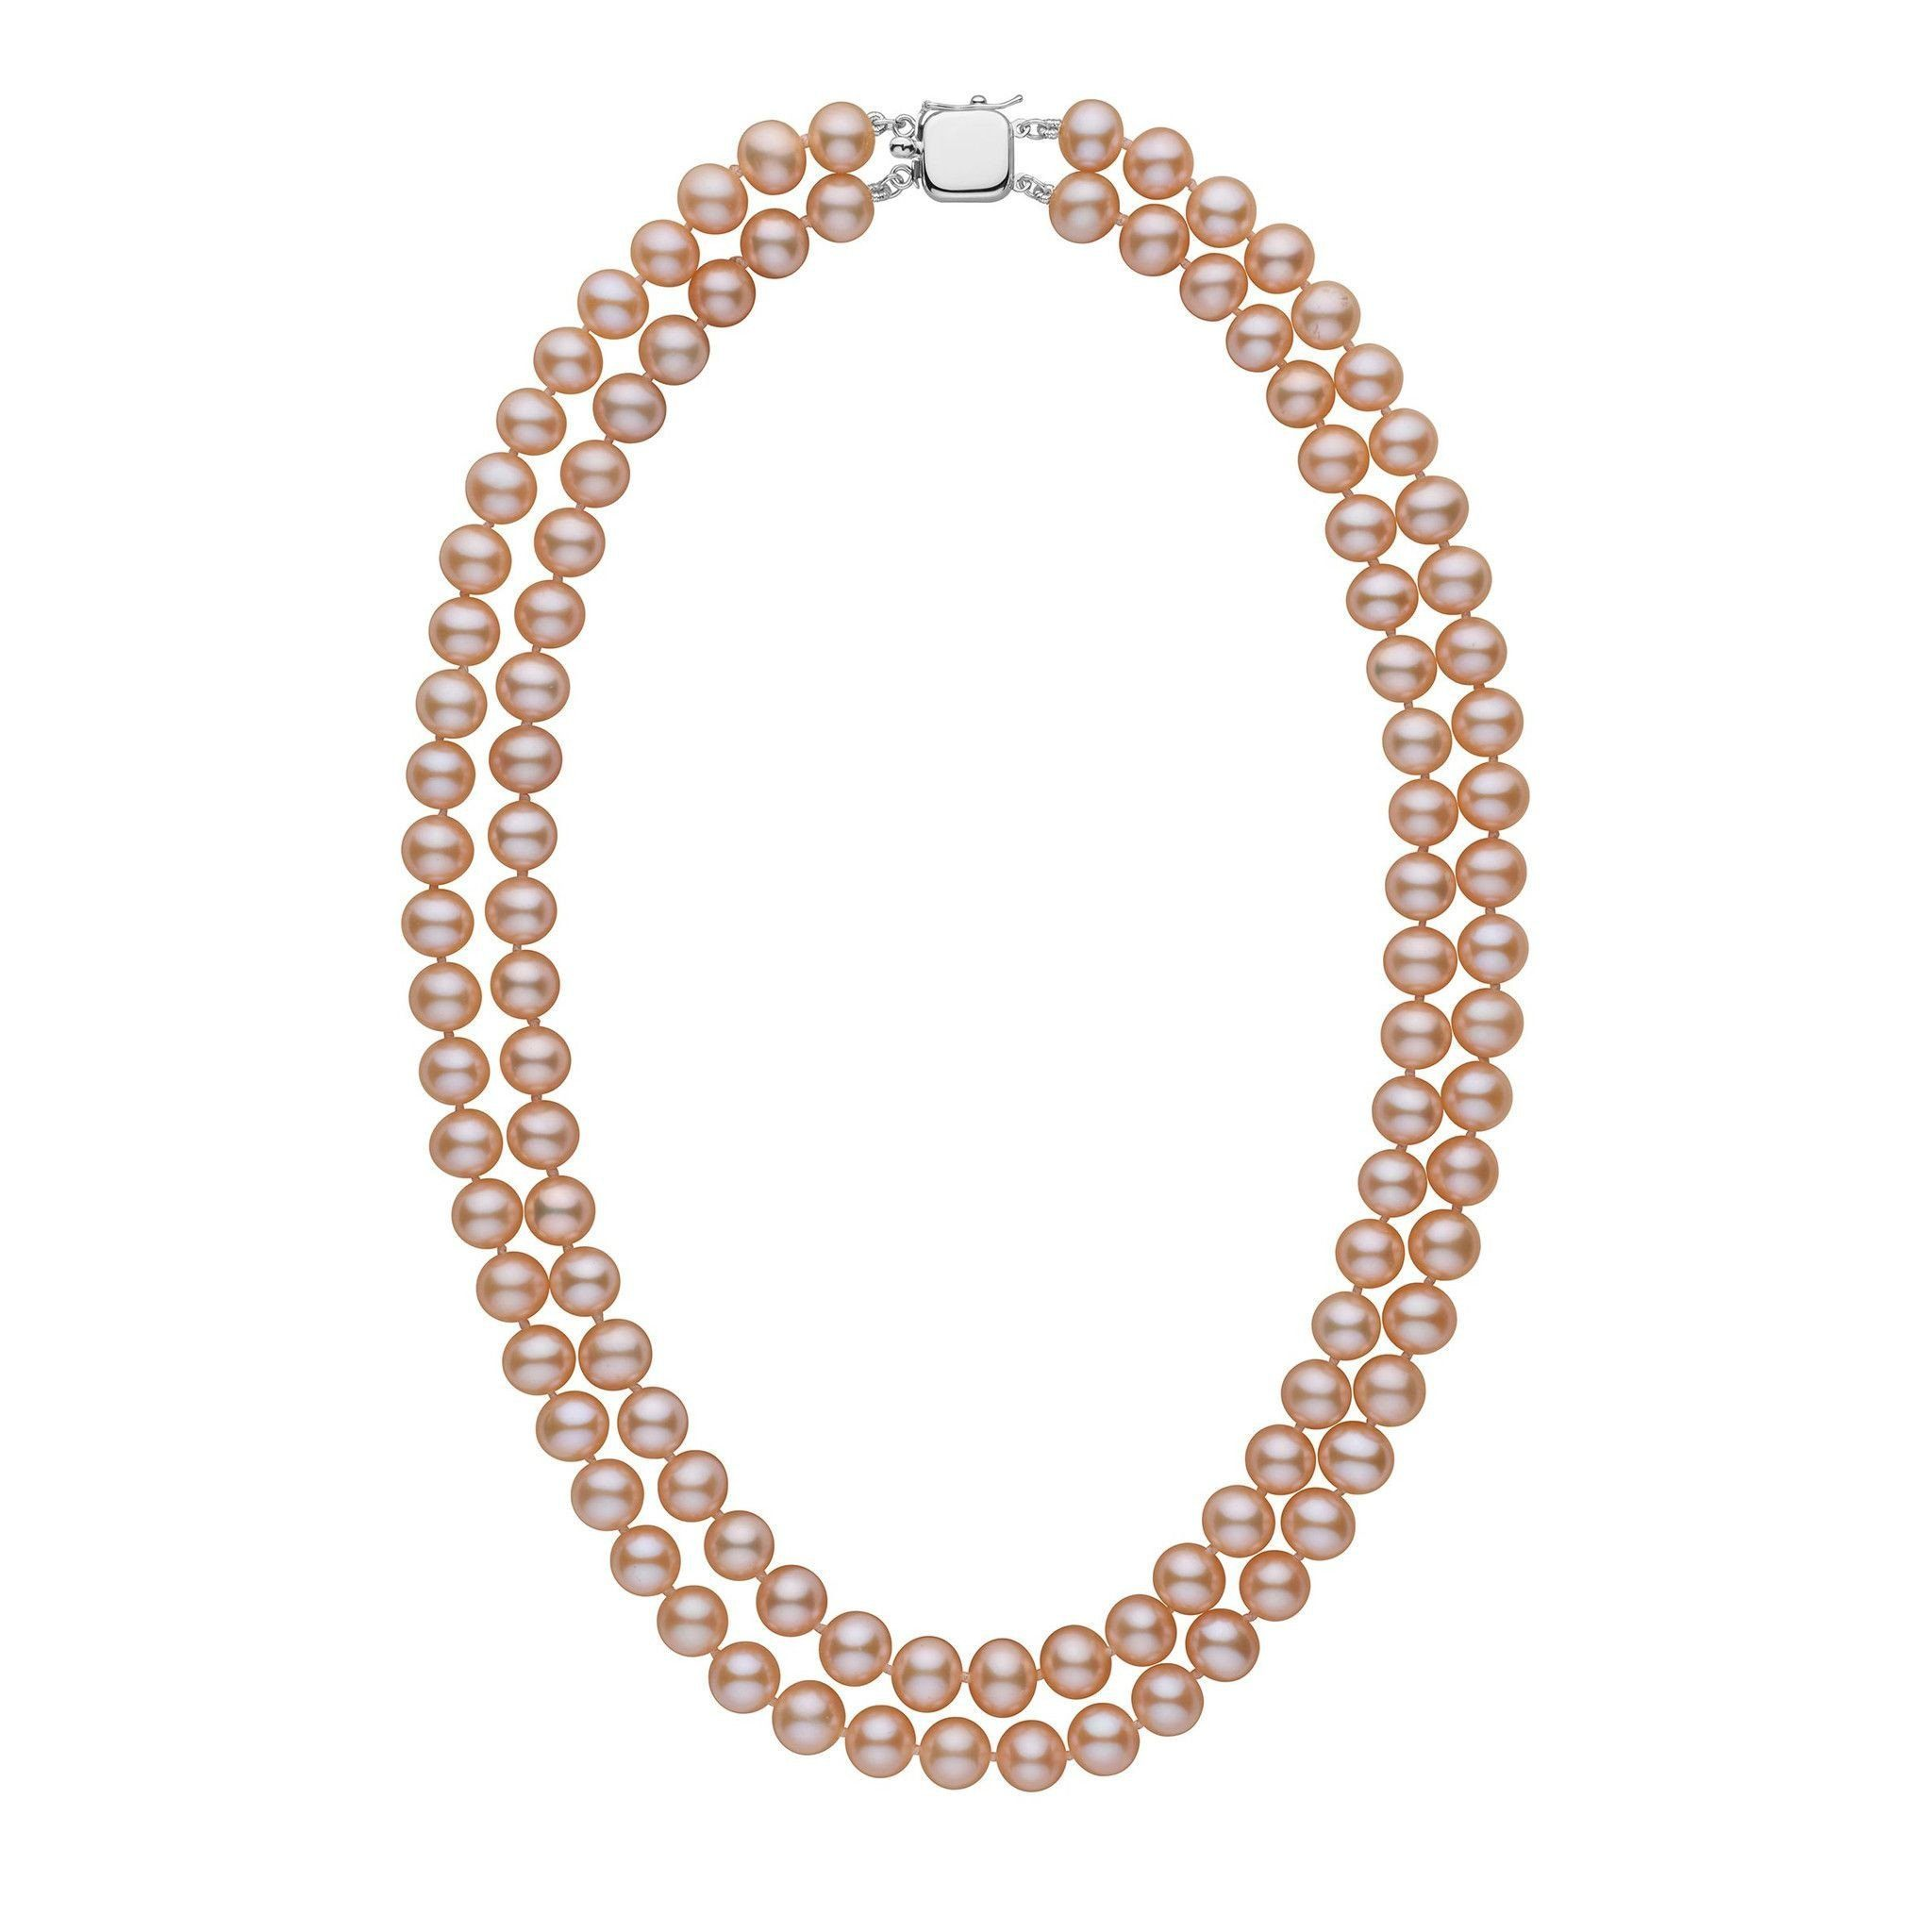 7.5-8.0 mm Double Strand AA+ Pink to Peach Freshwater Pearl Necklace